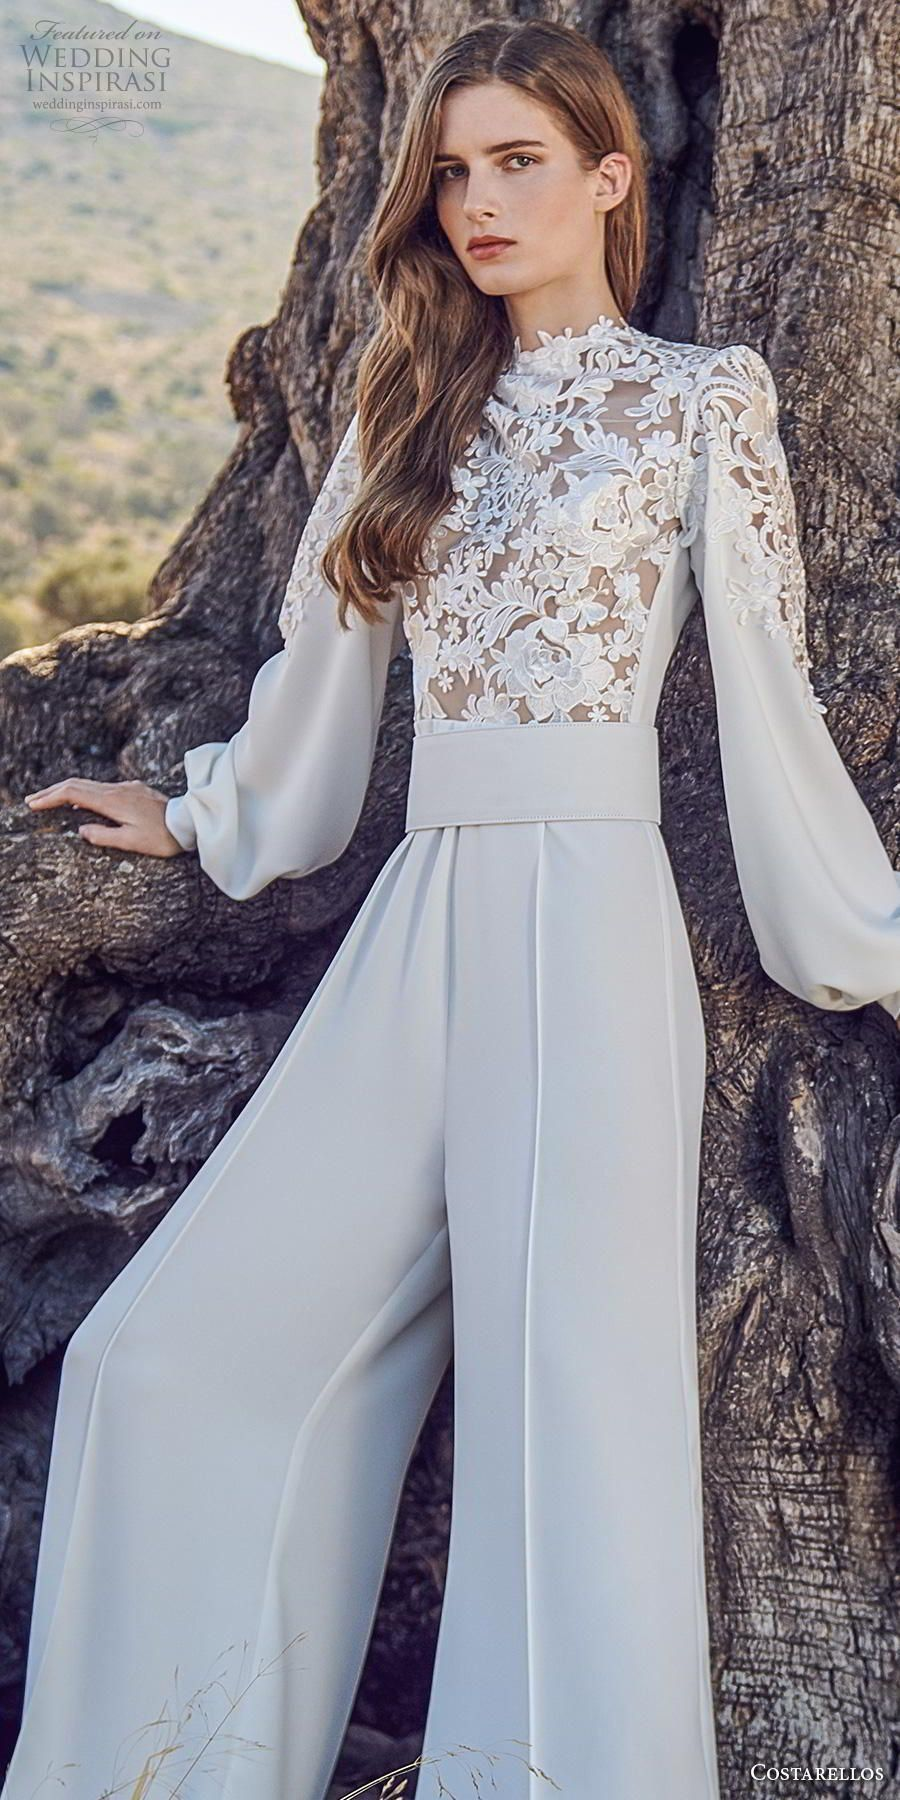 24+ Sexiest wedding guest dresses ideas in 2021